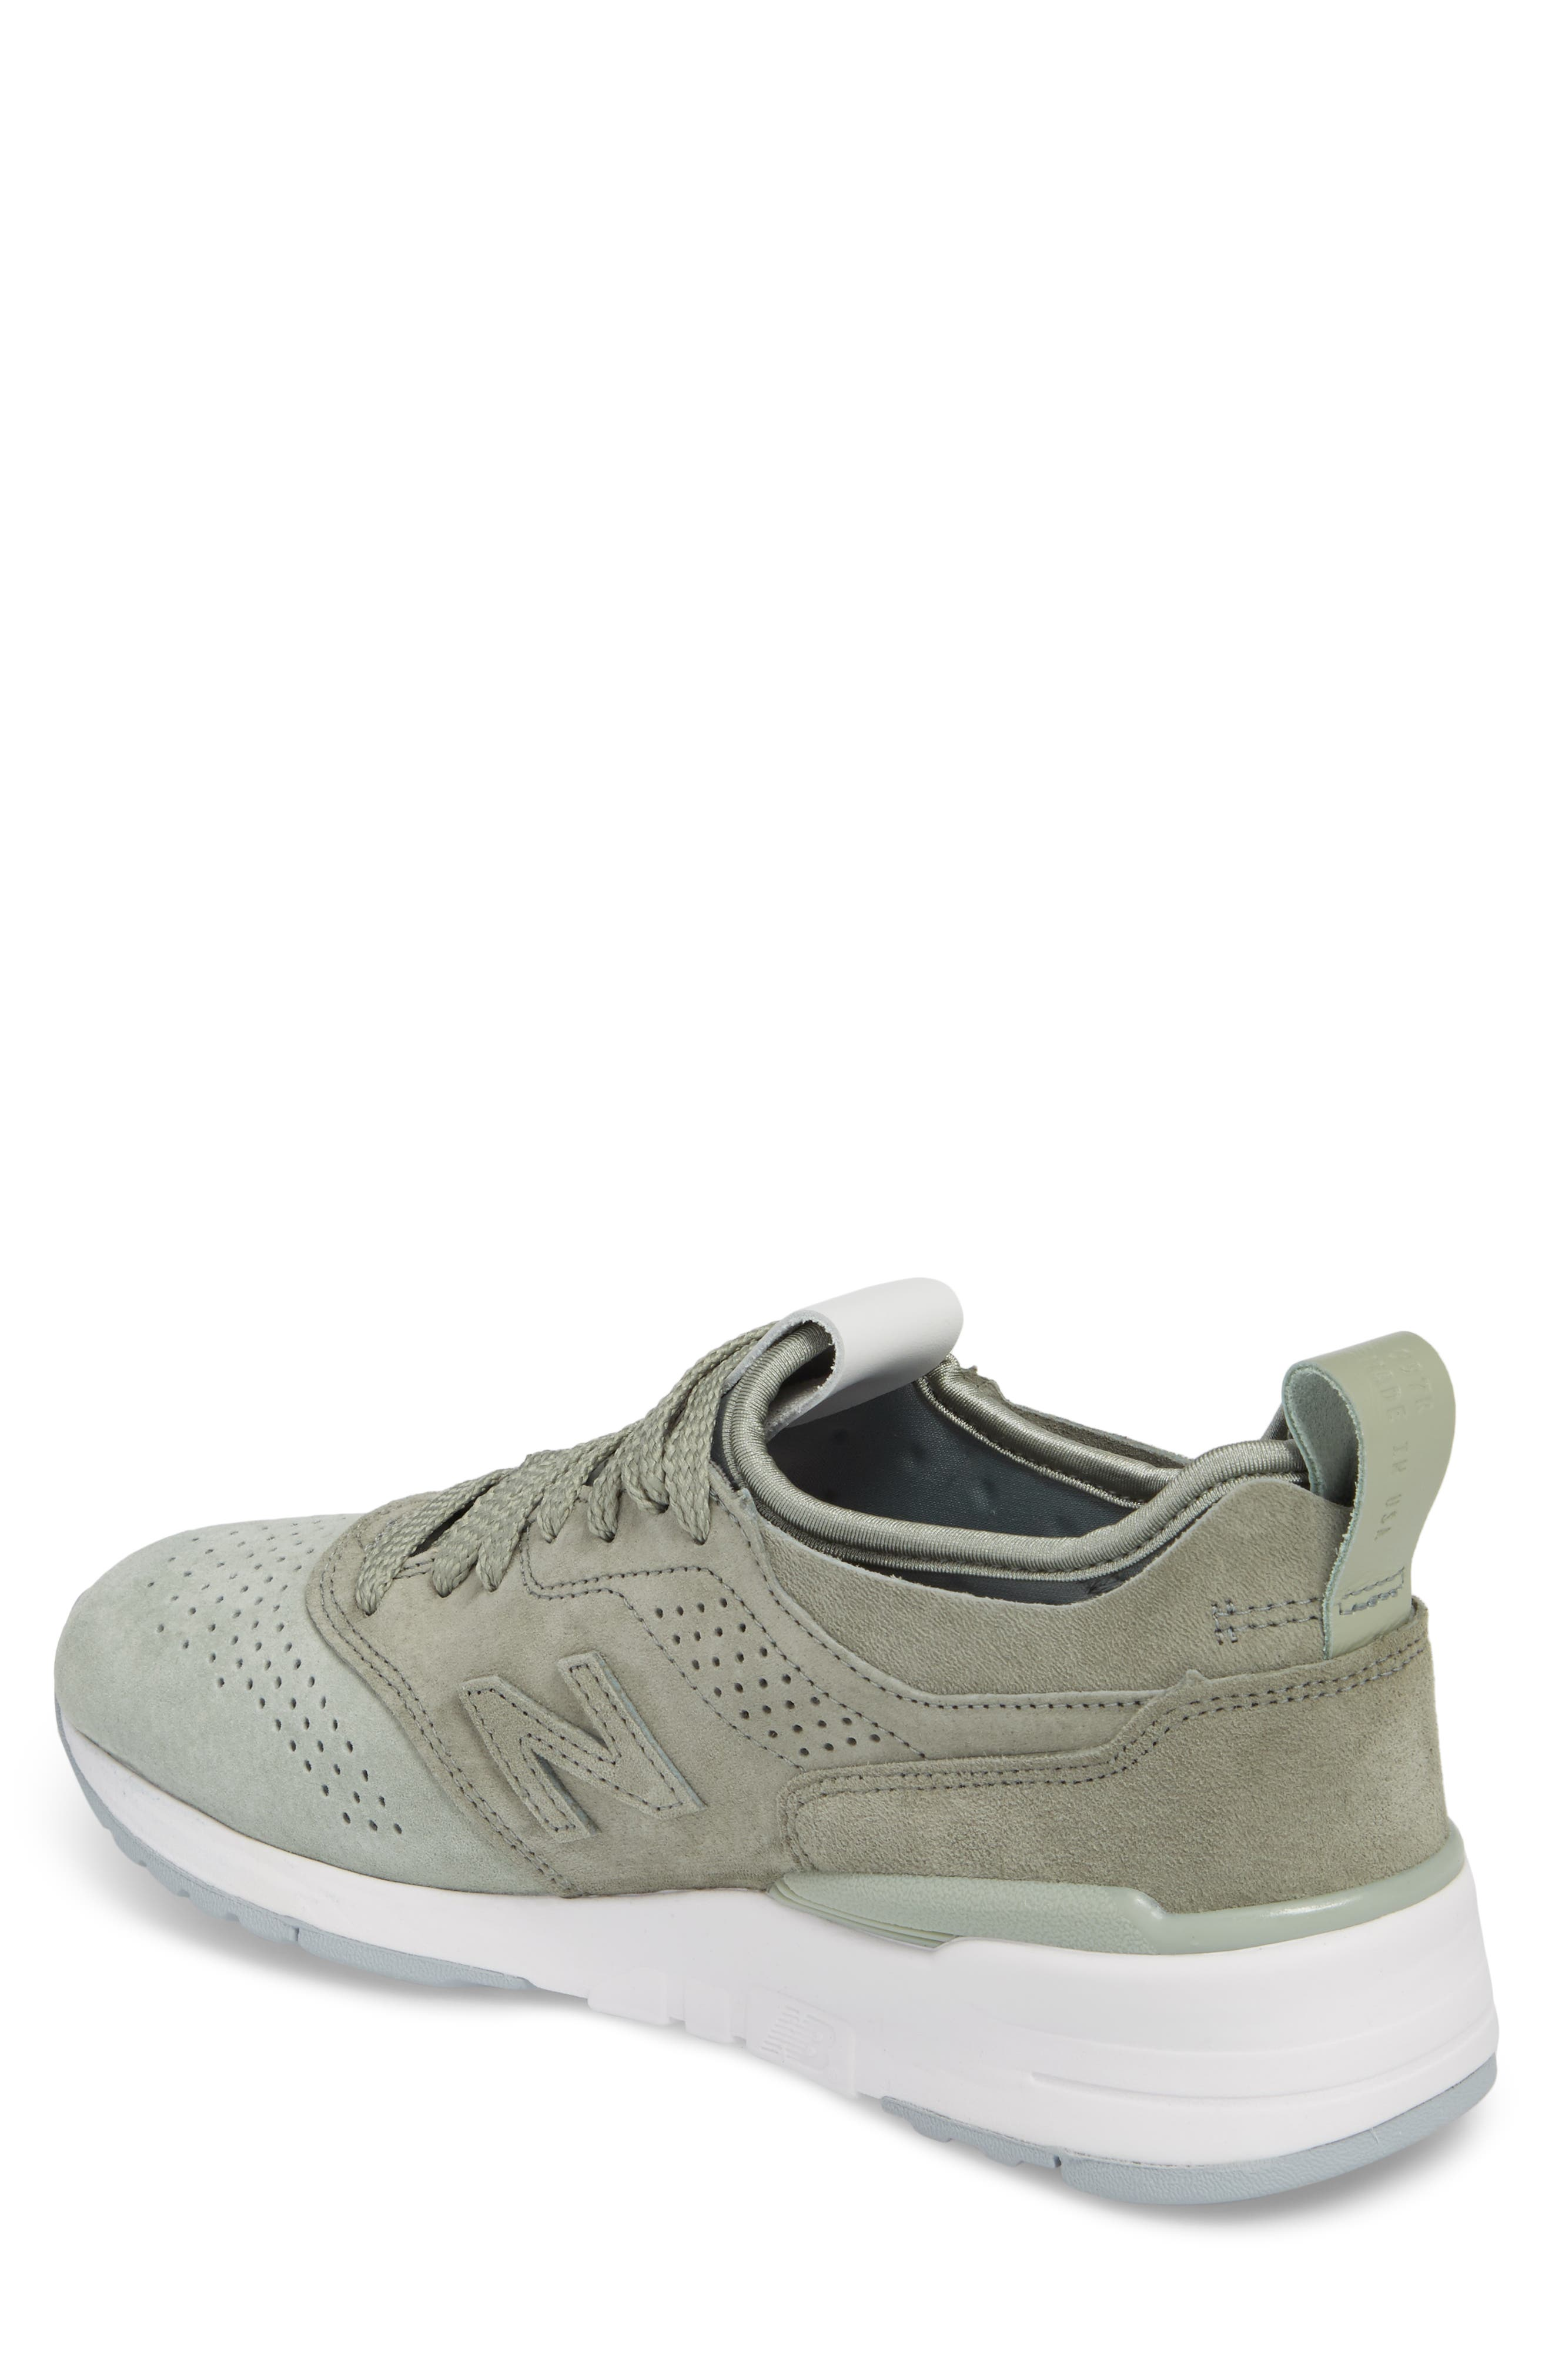 997R Perforated Sneaker,                             Alternate thumbnail 2, color,                             Silver Mint